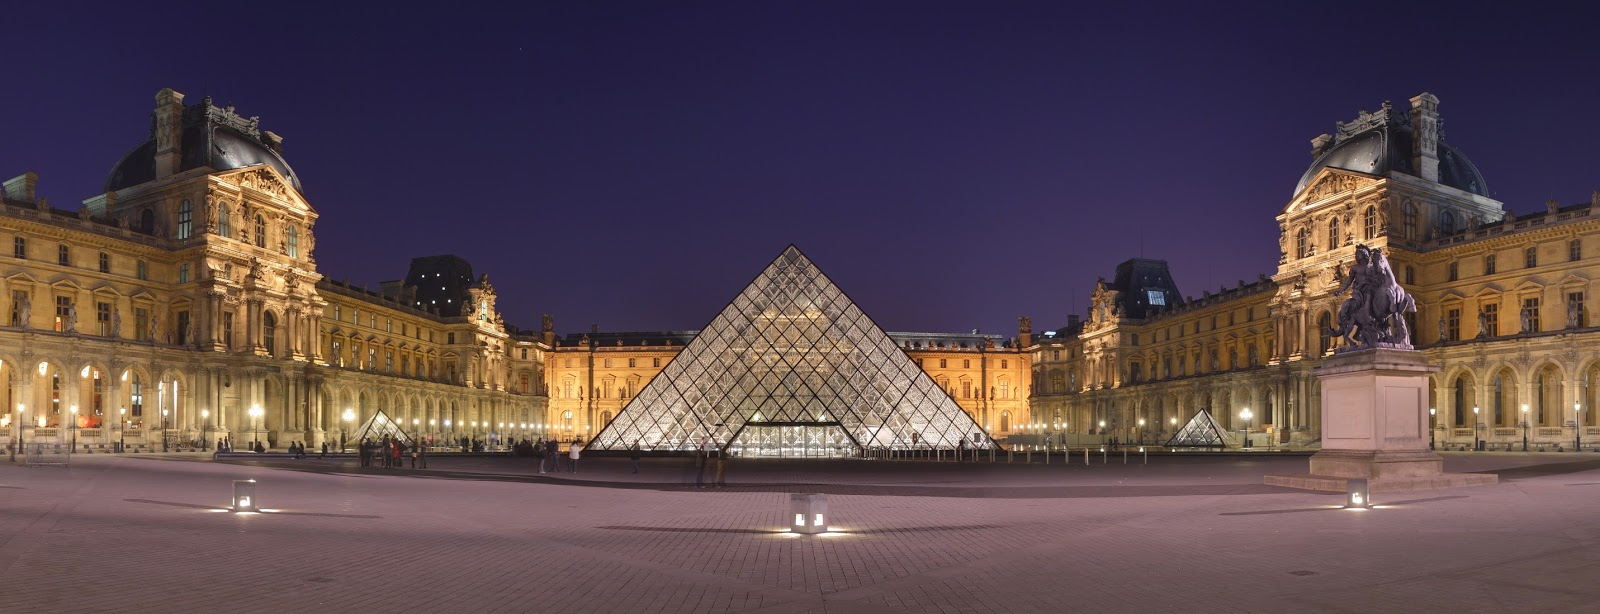 These Are The 25 Best Museums In The World - Louvre